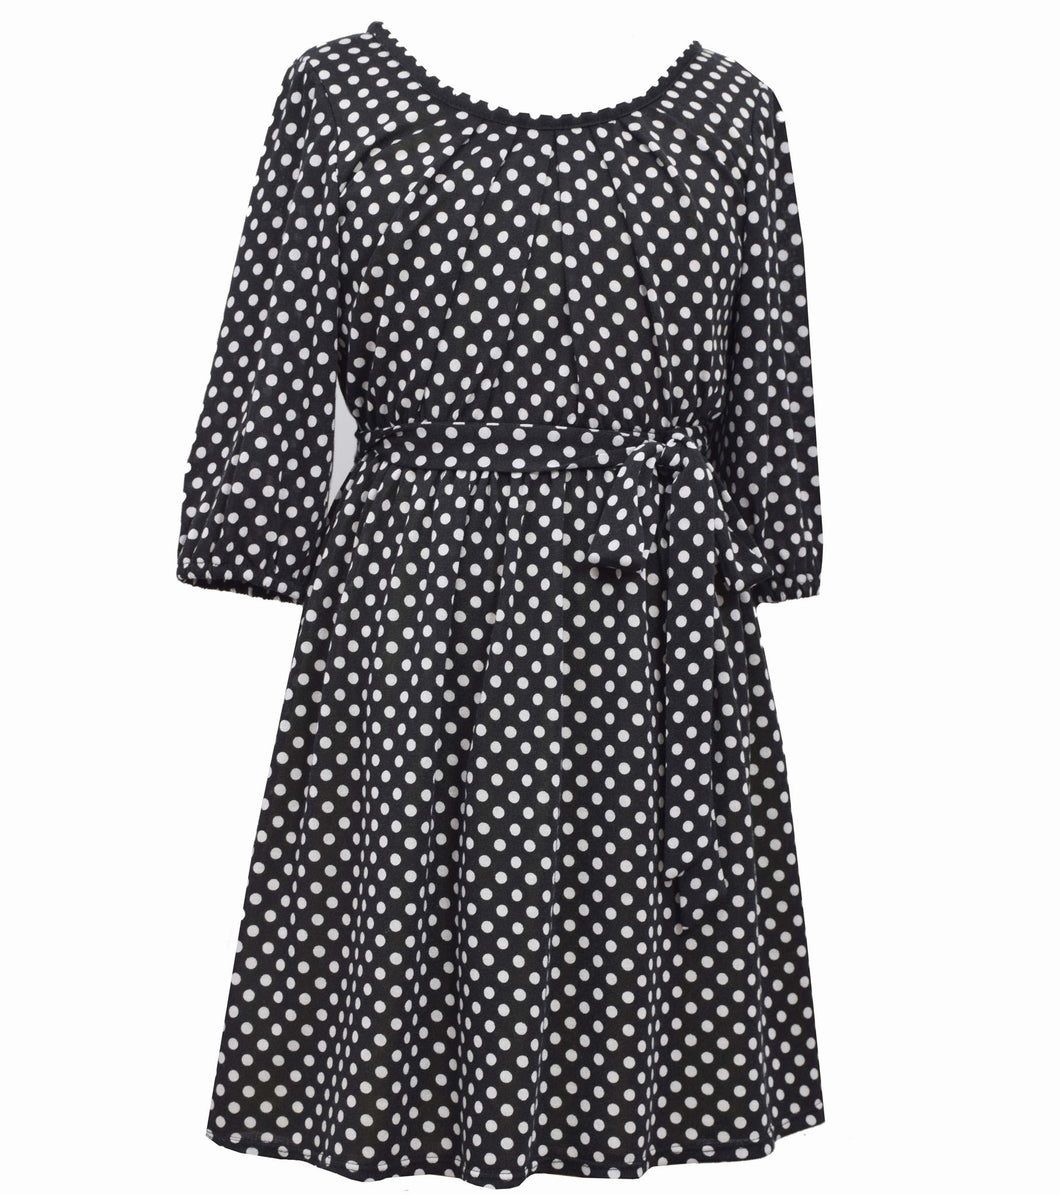 Bonnie Jean black and white polka dot dress